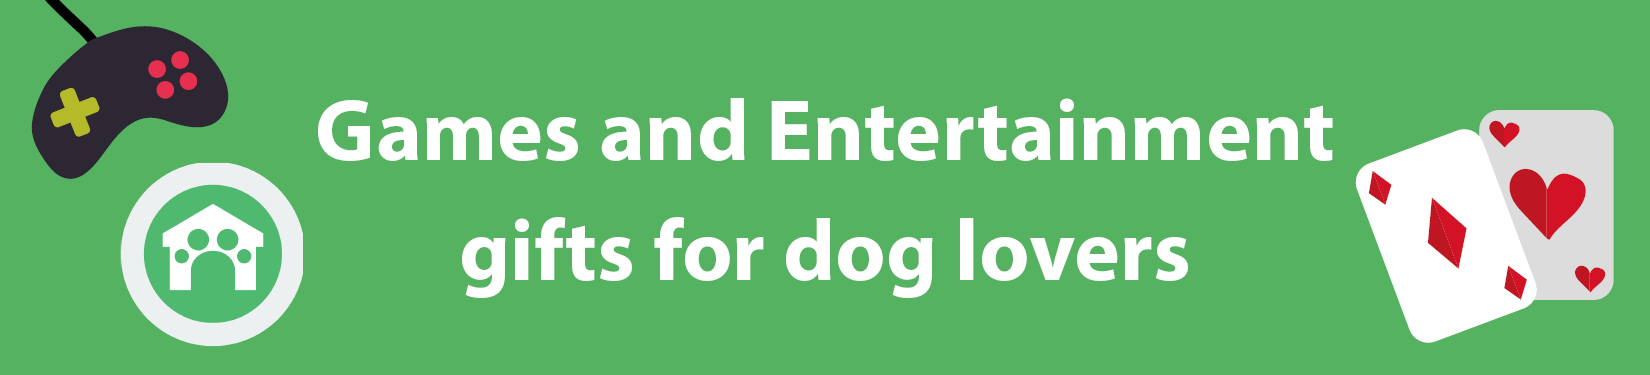 Games and entertainment gifts for dog lovers header image